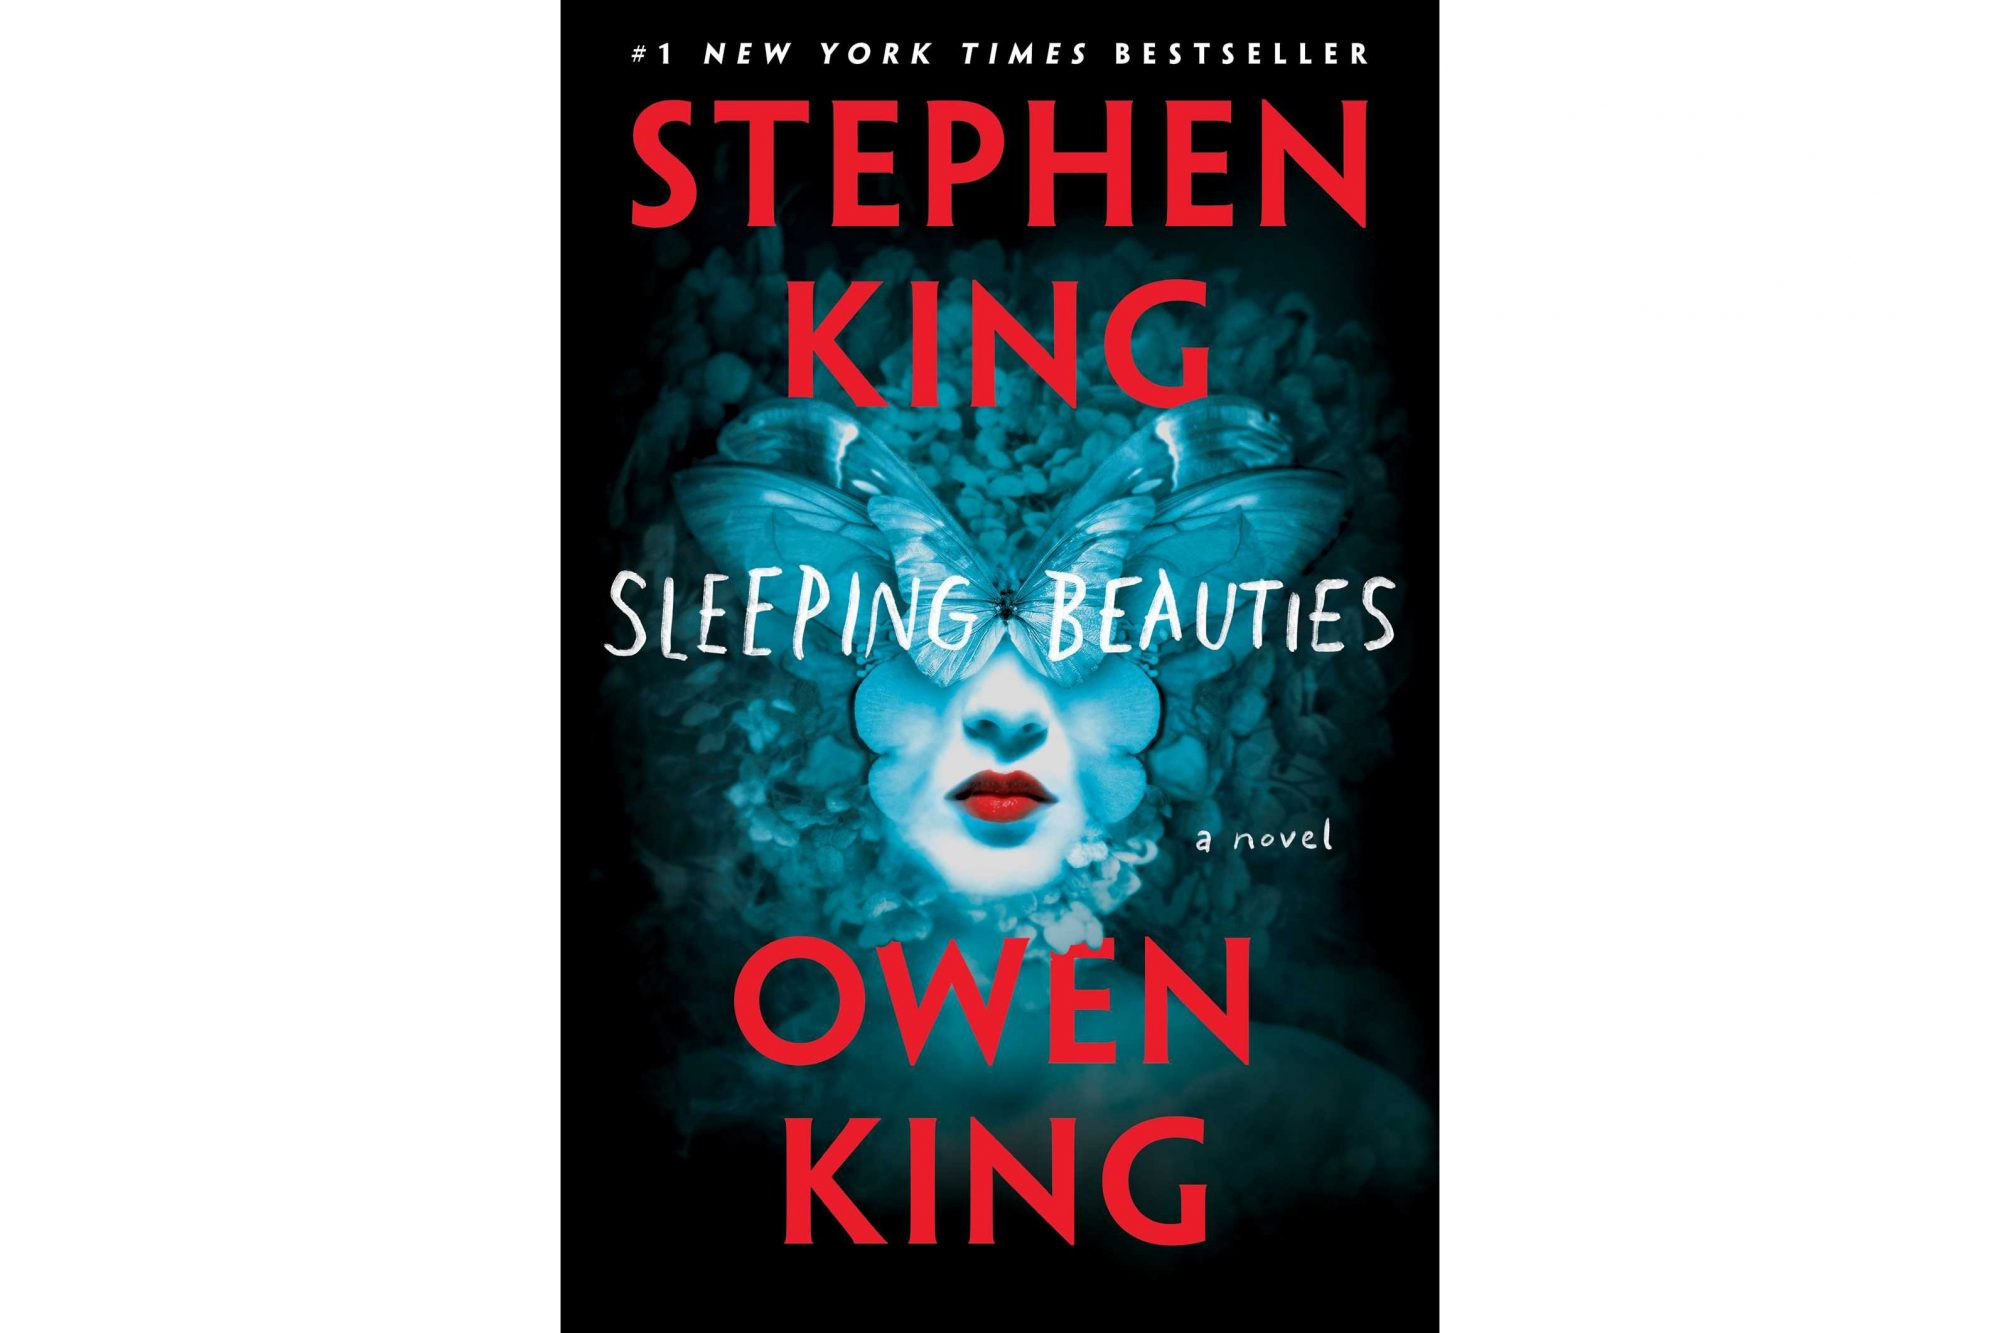 Sleeping Beauties, by Stephen and Owen King (FB BOOKS)